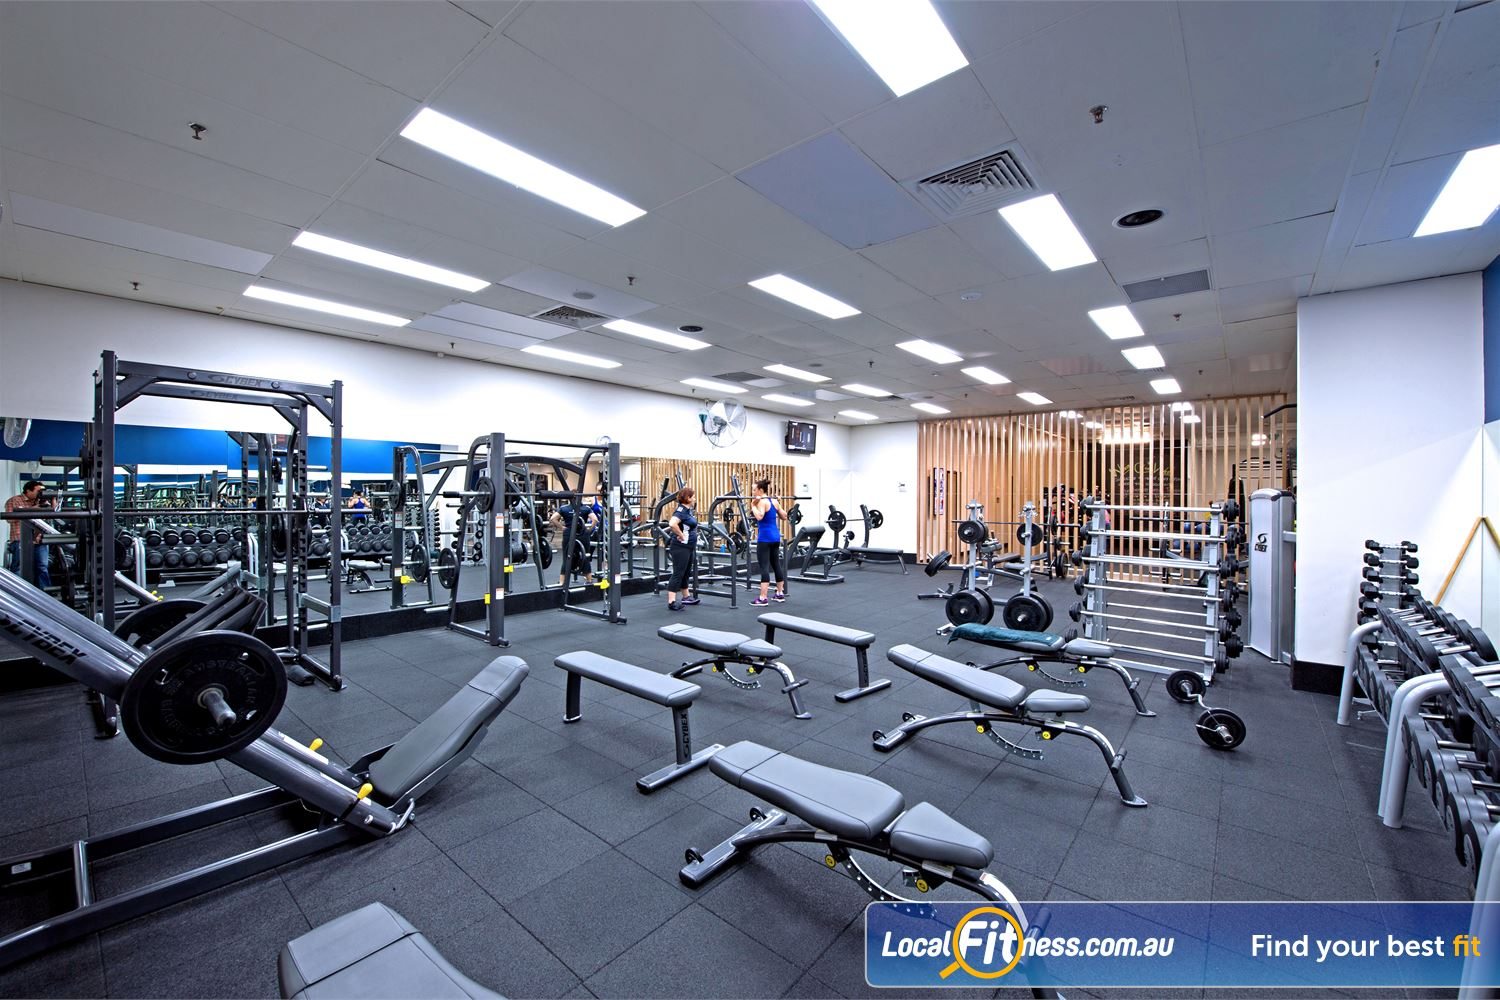 Goodlife Health Clubs Cottesloe The fully equipped Cottesloe free-weights gym area.